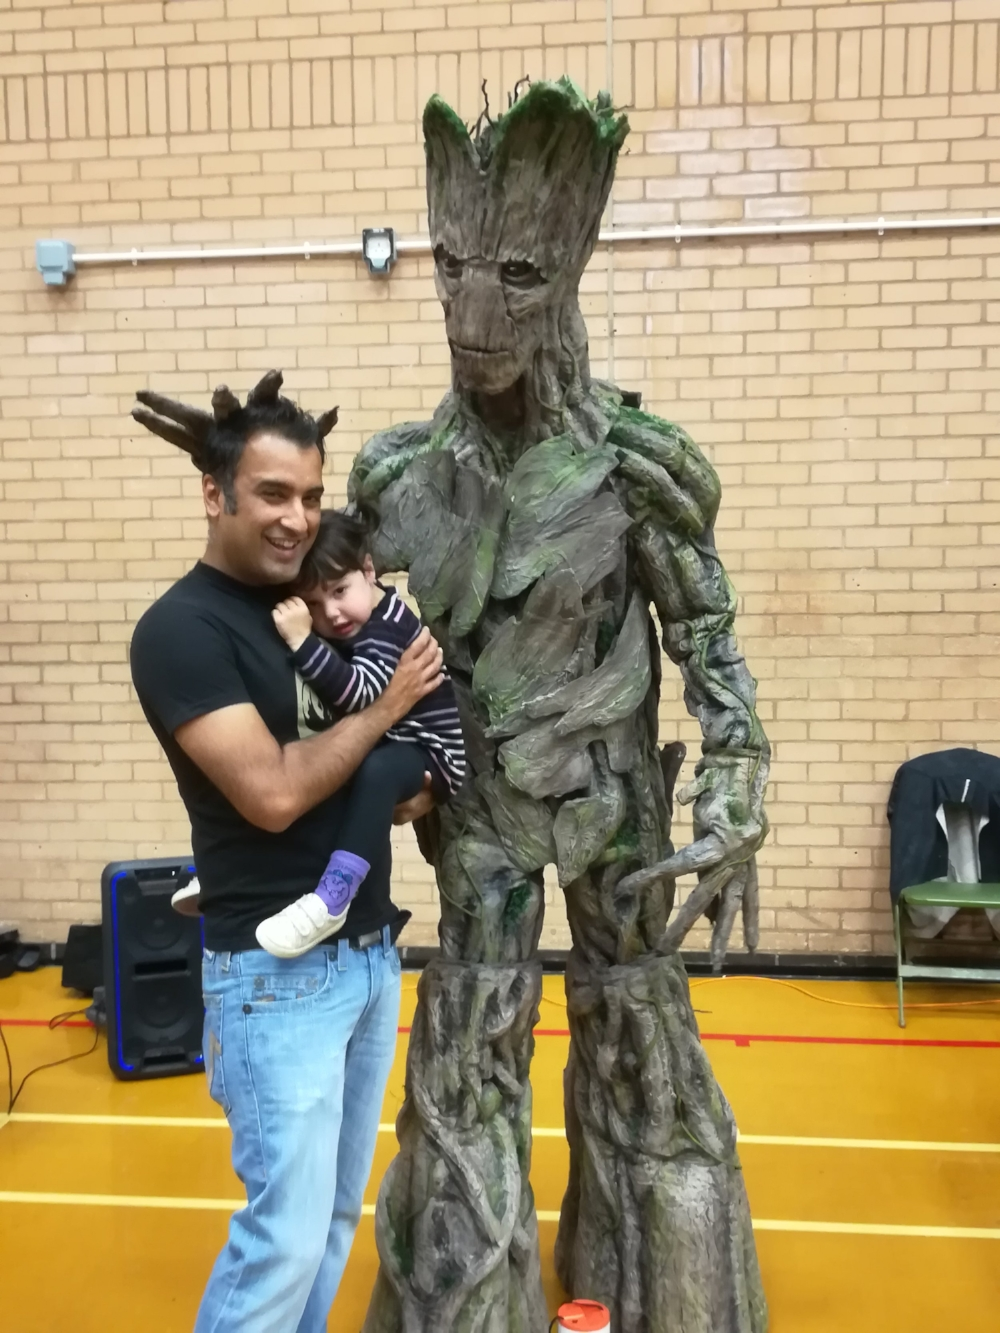 My daughter and I met Groot... she was suitably scared!